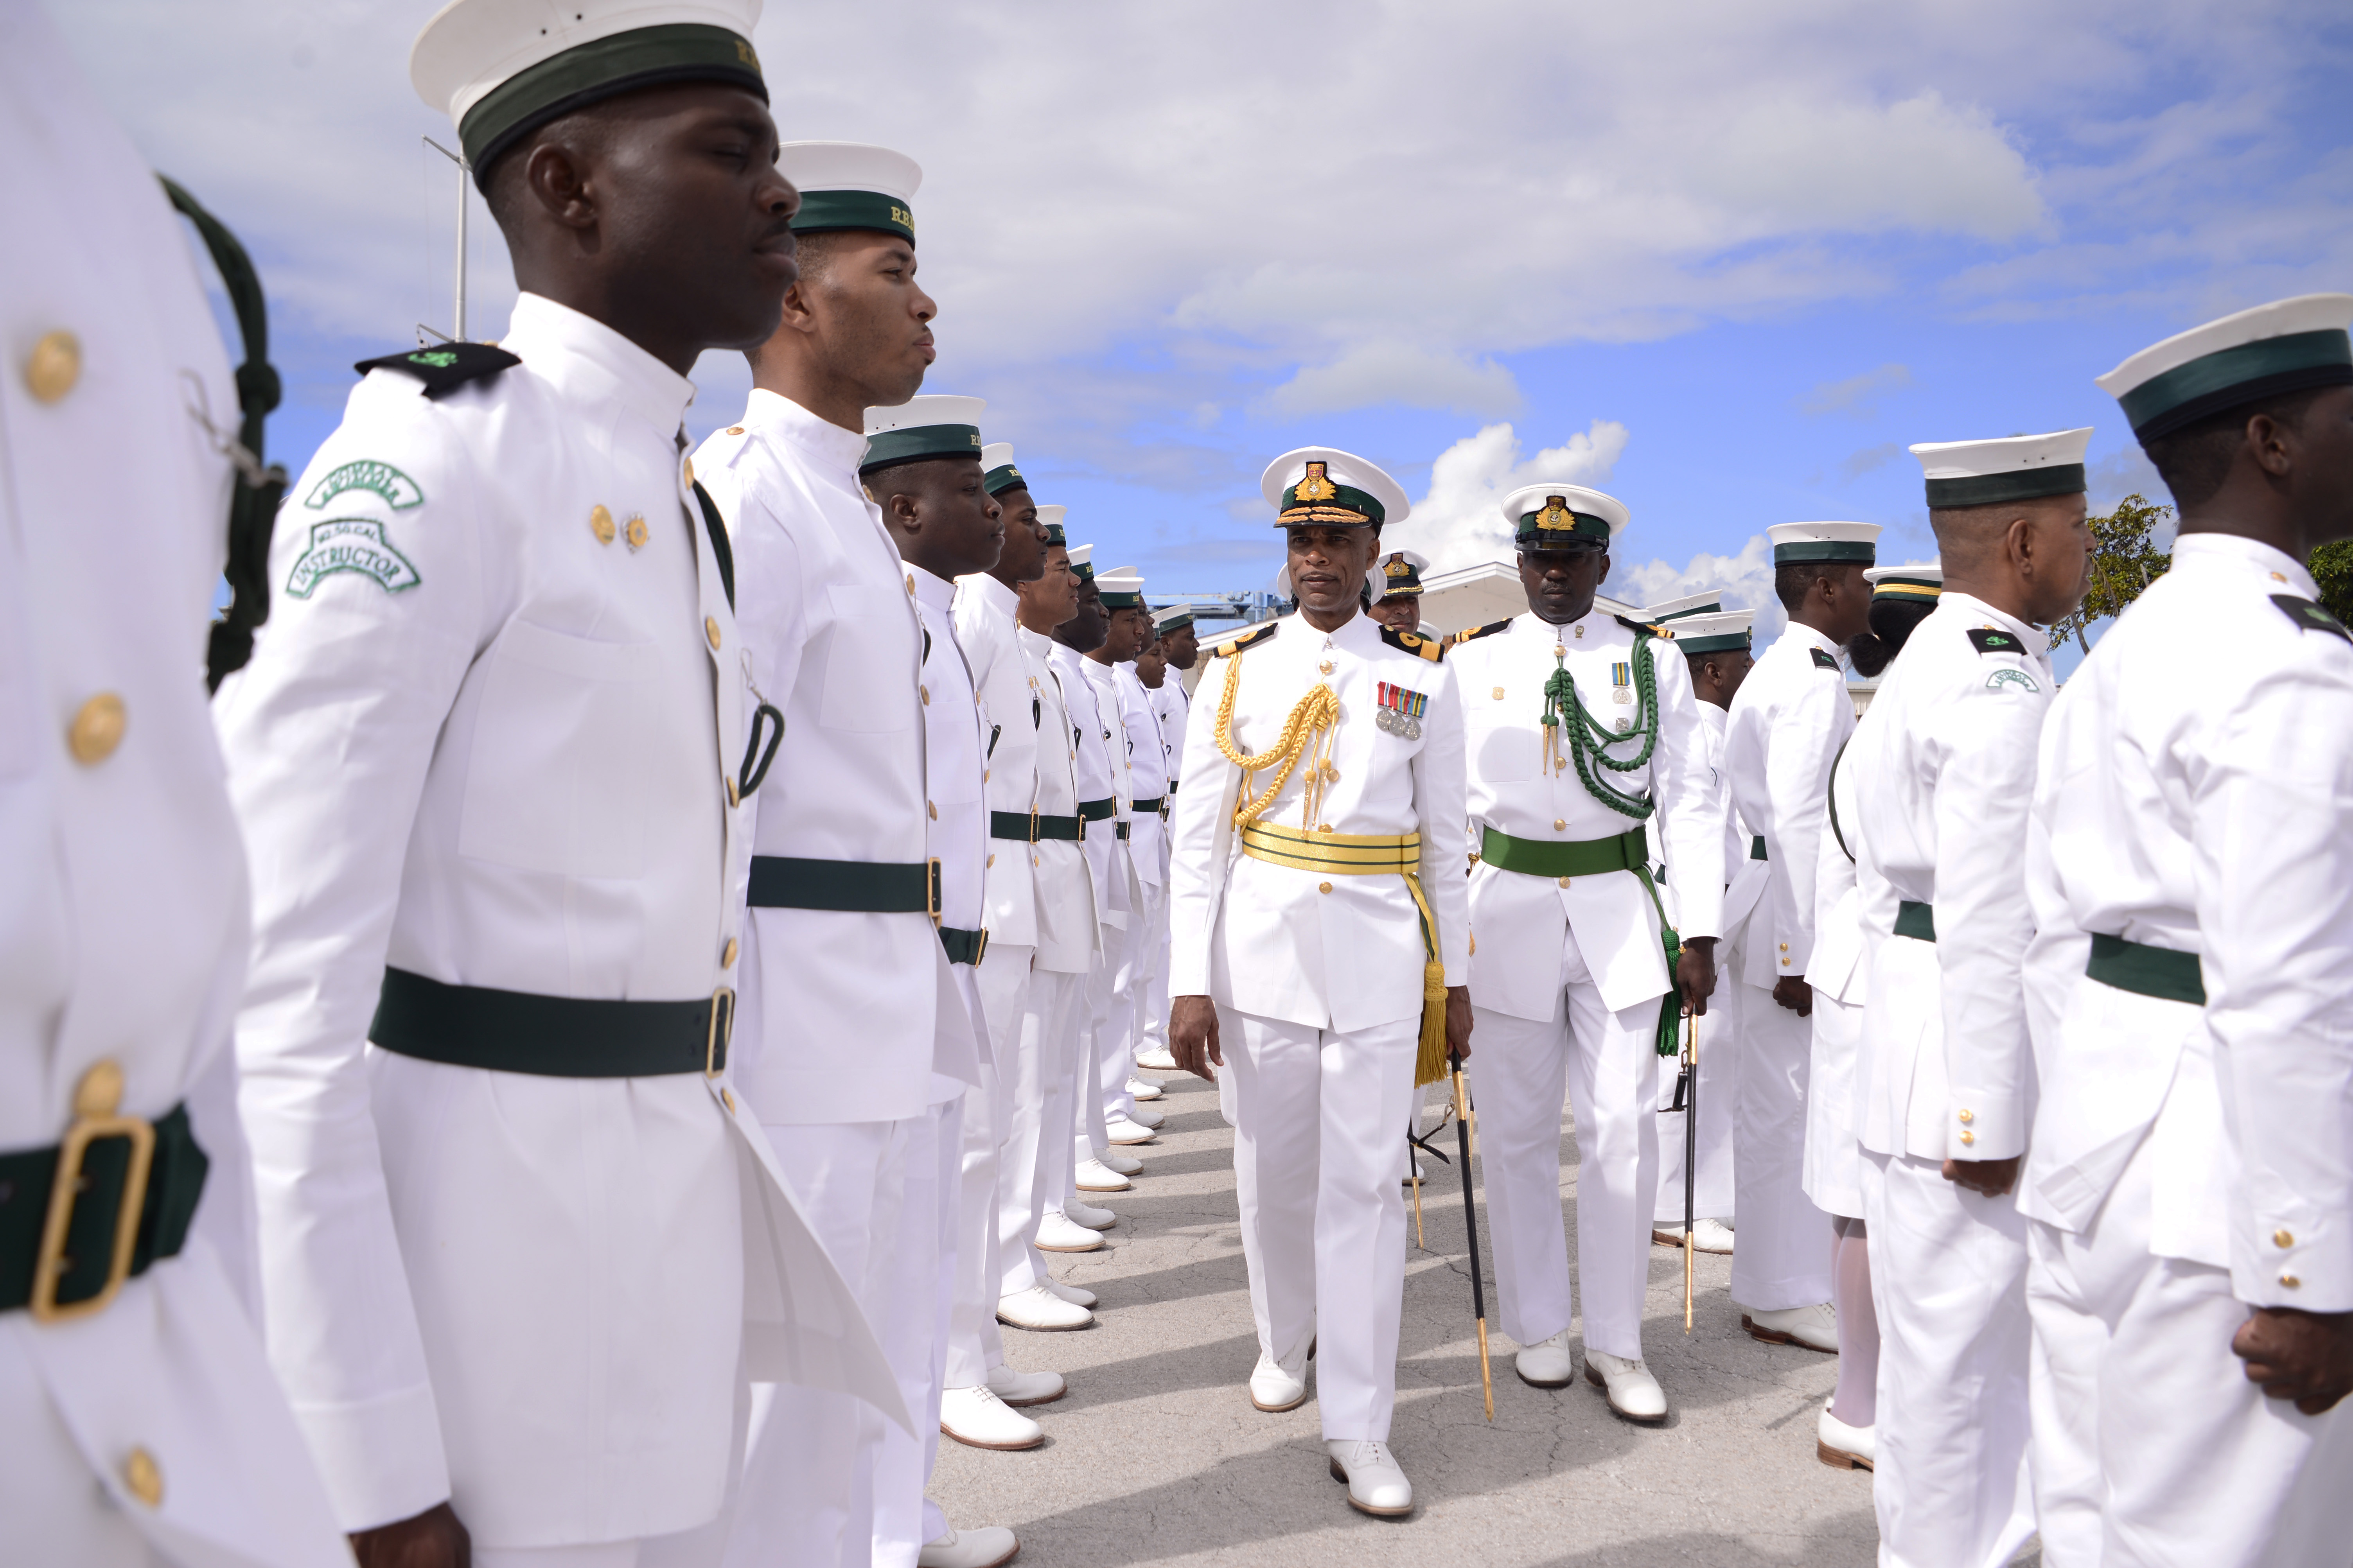 Defence force bases planned for late 2018